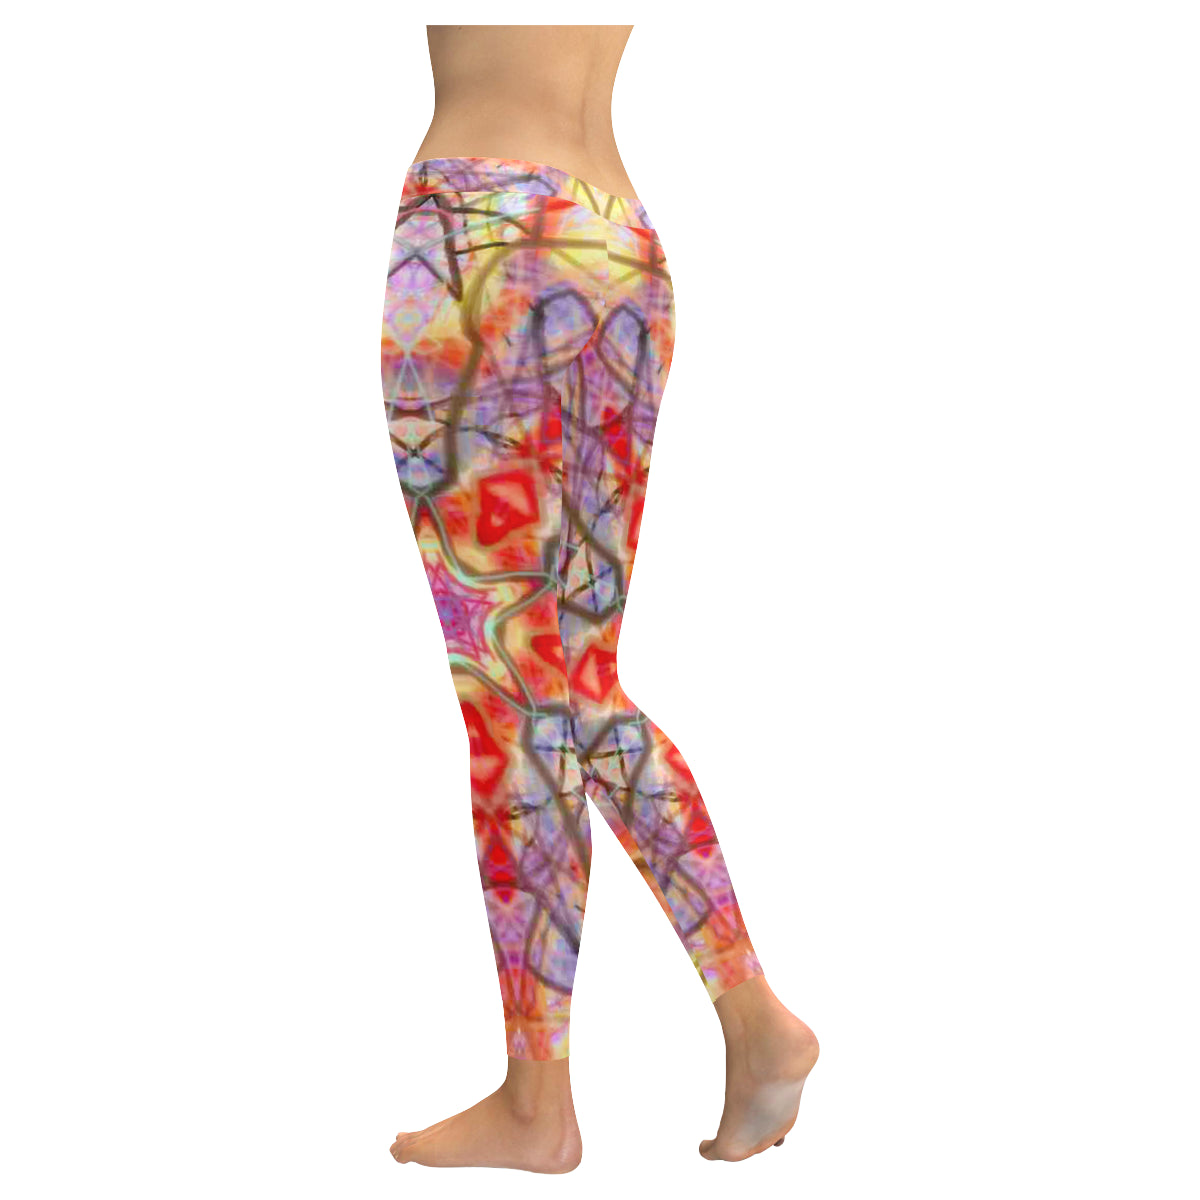 Thleudron Eidos Low Rise Leggings (Invisible Stitch) (Model L05) - Thleudron